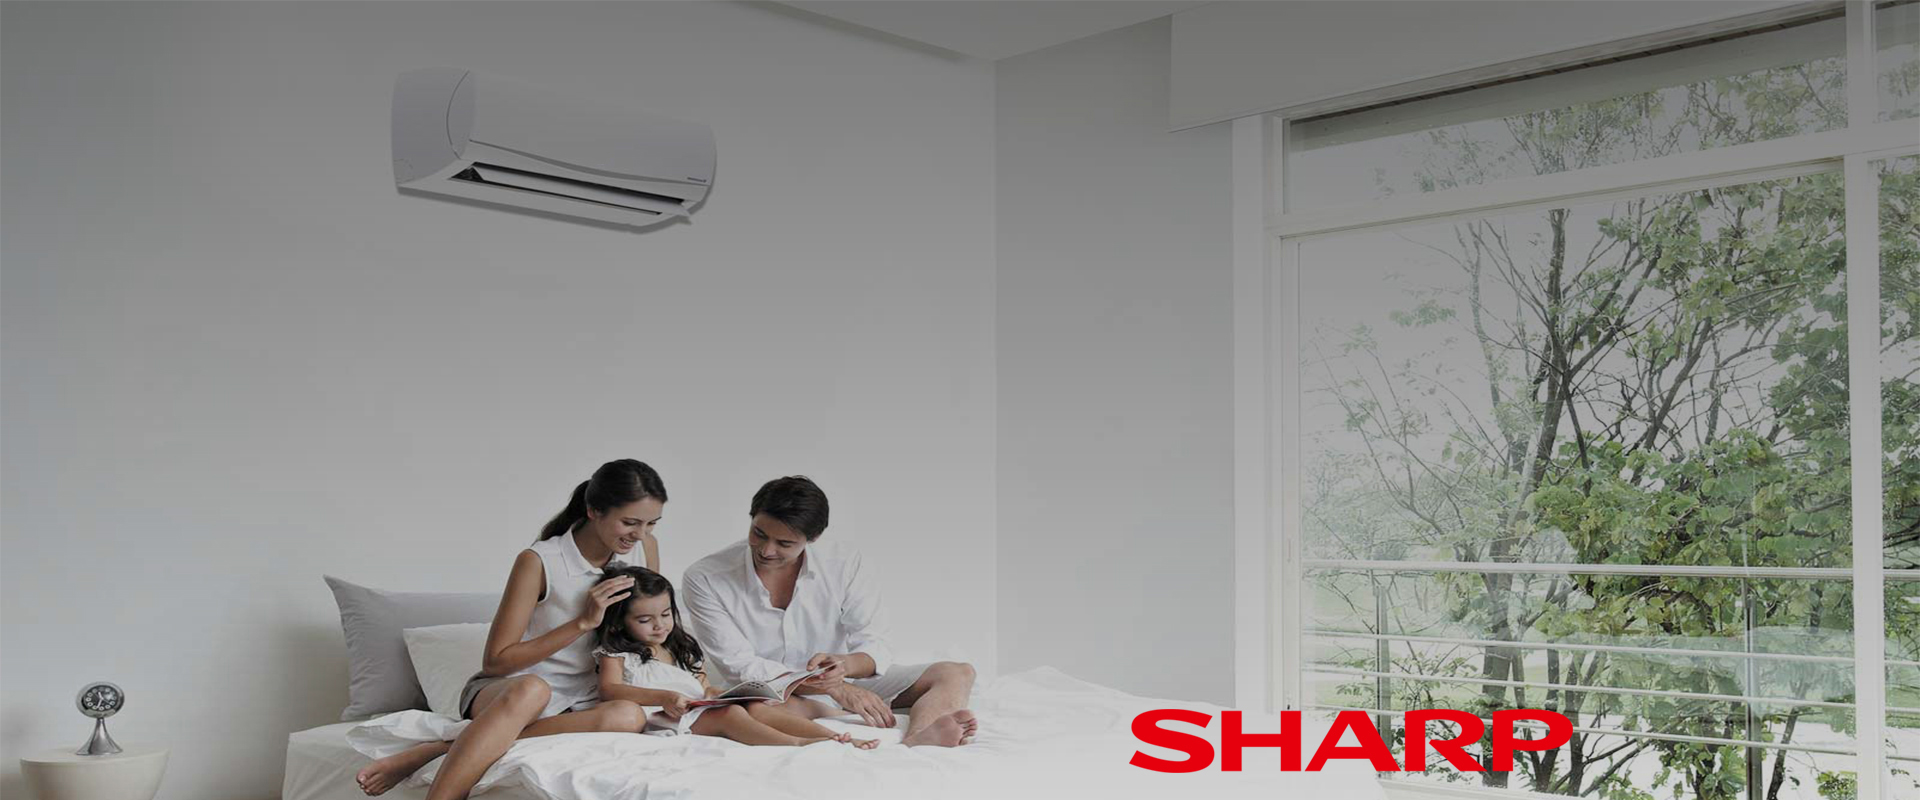 <h2>Κλιματισμός SHARP</h2><p>Στυλ & Οικονομία</p><div class='bgslideshowmore'><a href='http://www.alexandrisclima.4ty.gr/more2.php?l=el&id=10478' >Περισσότερα...</a></div>